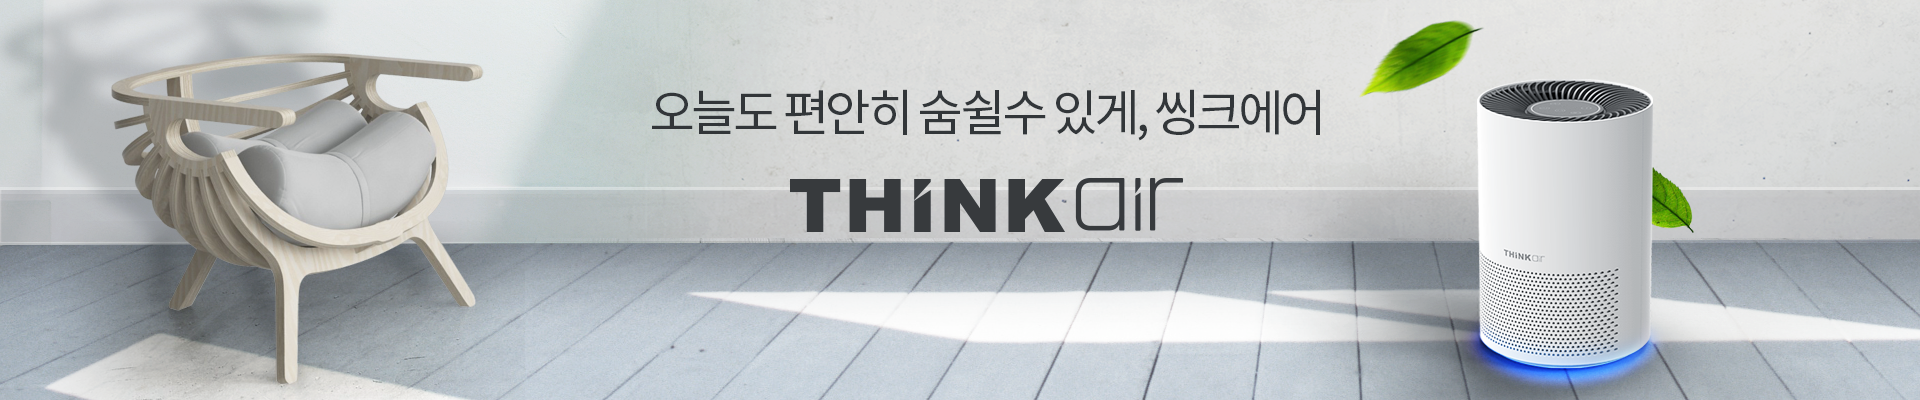 thinkair-top-1920x400.jpg